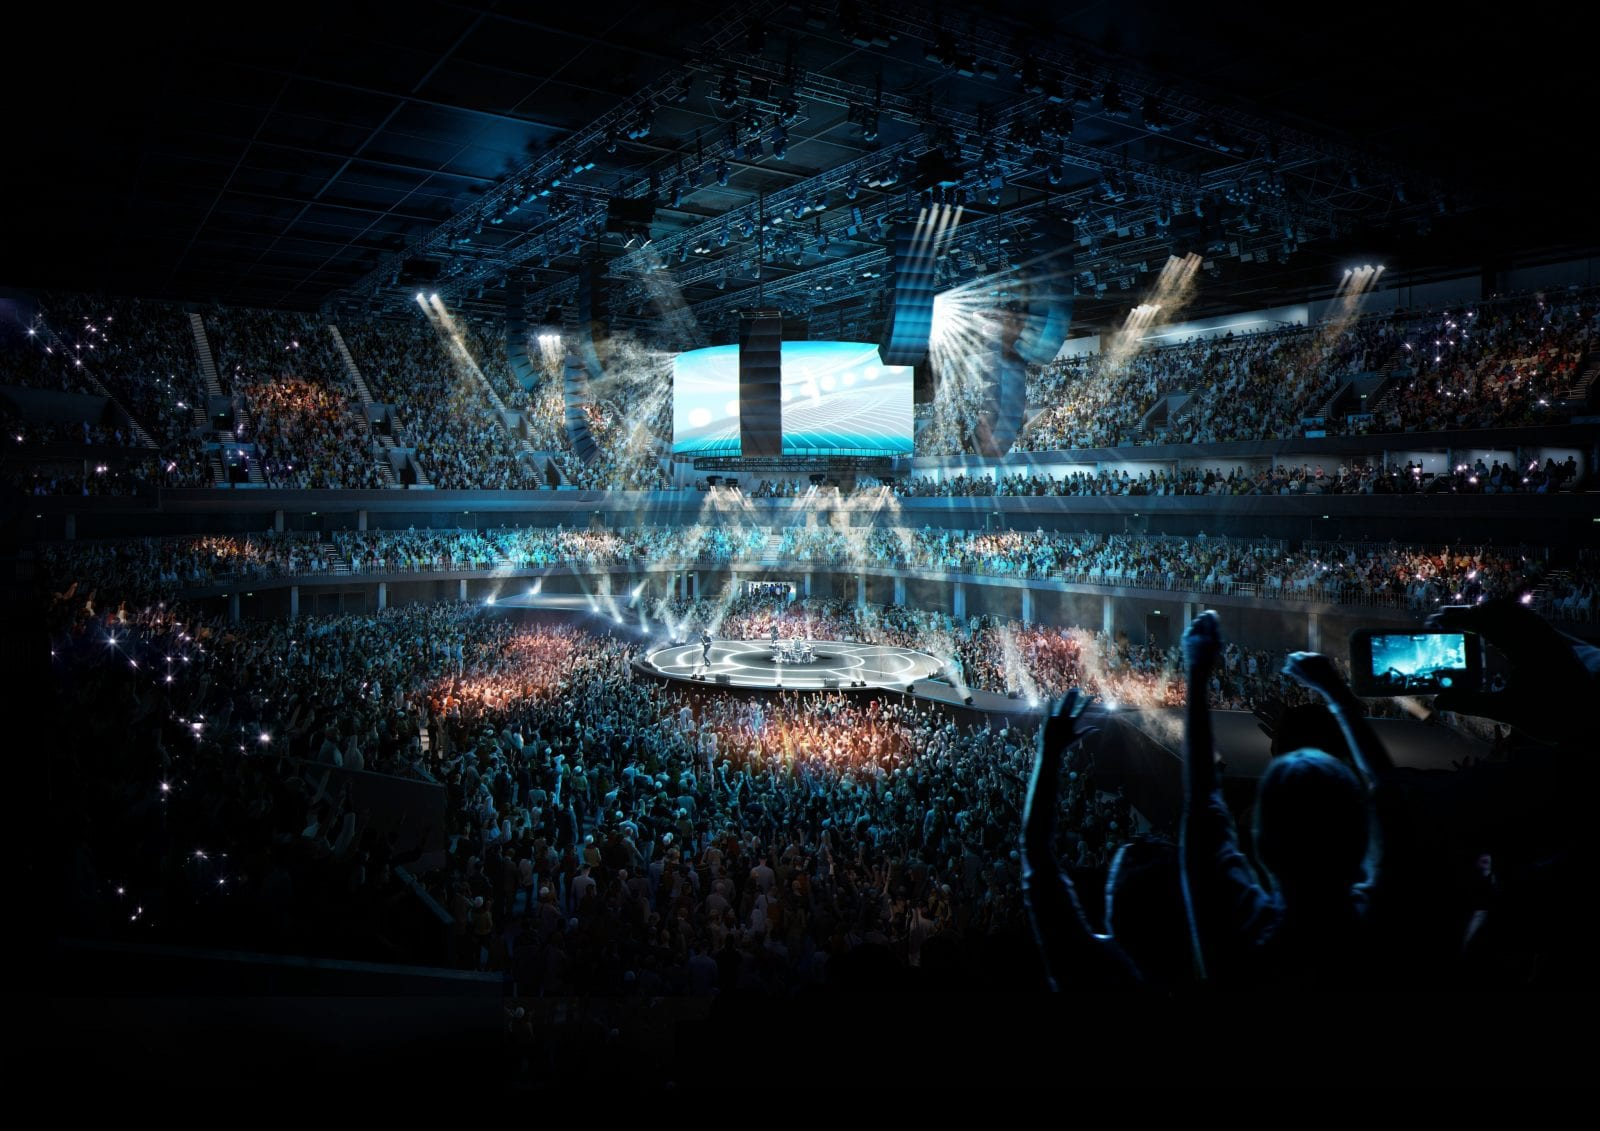 This is what the new Co-Op Live arena in Manchester will look like, The Manc